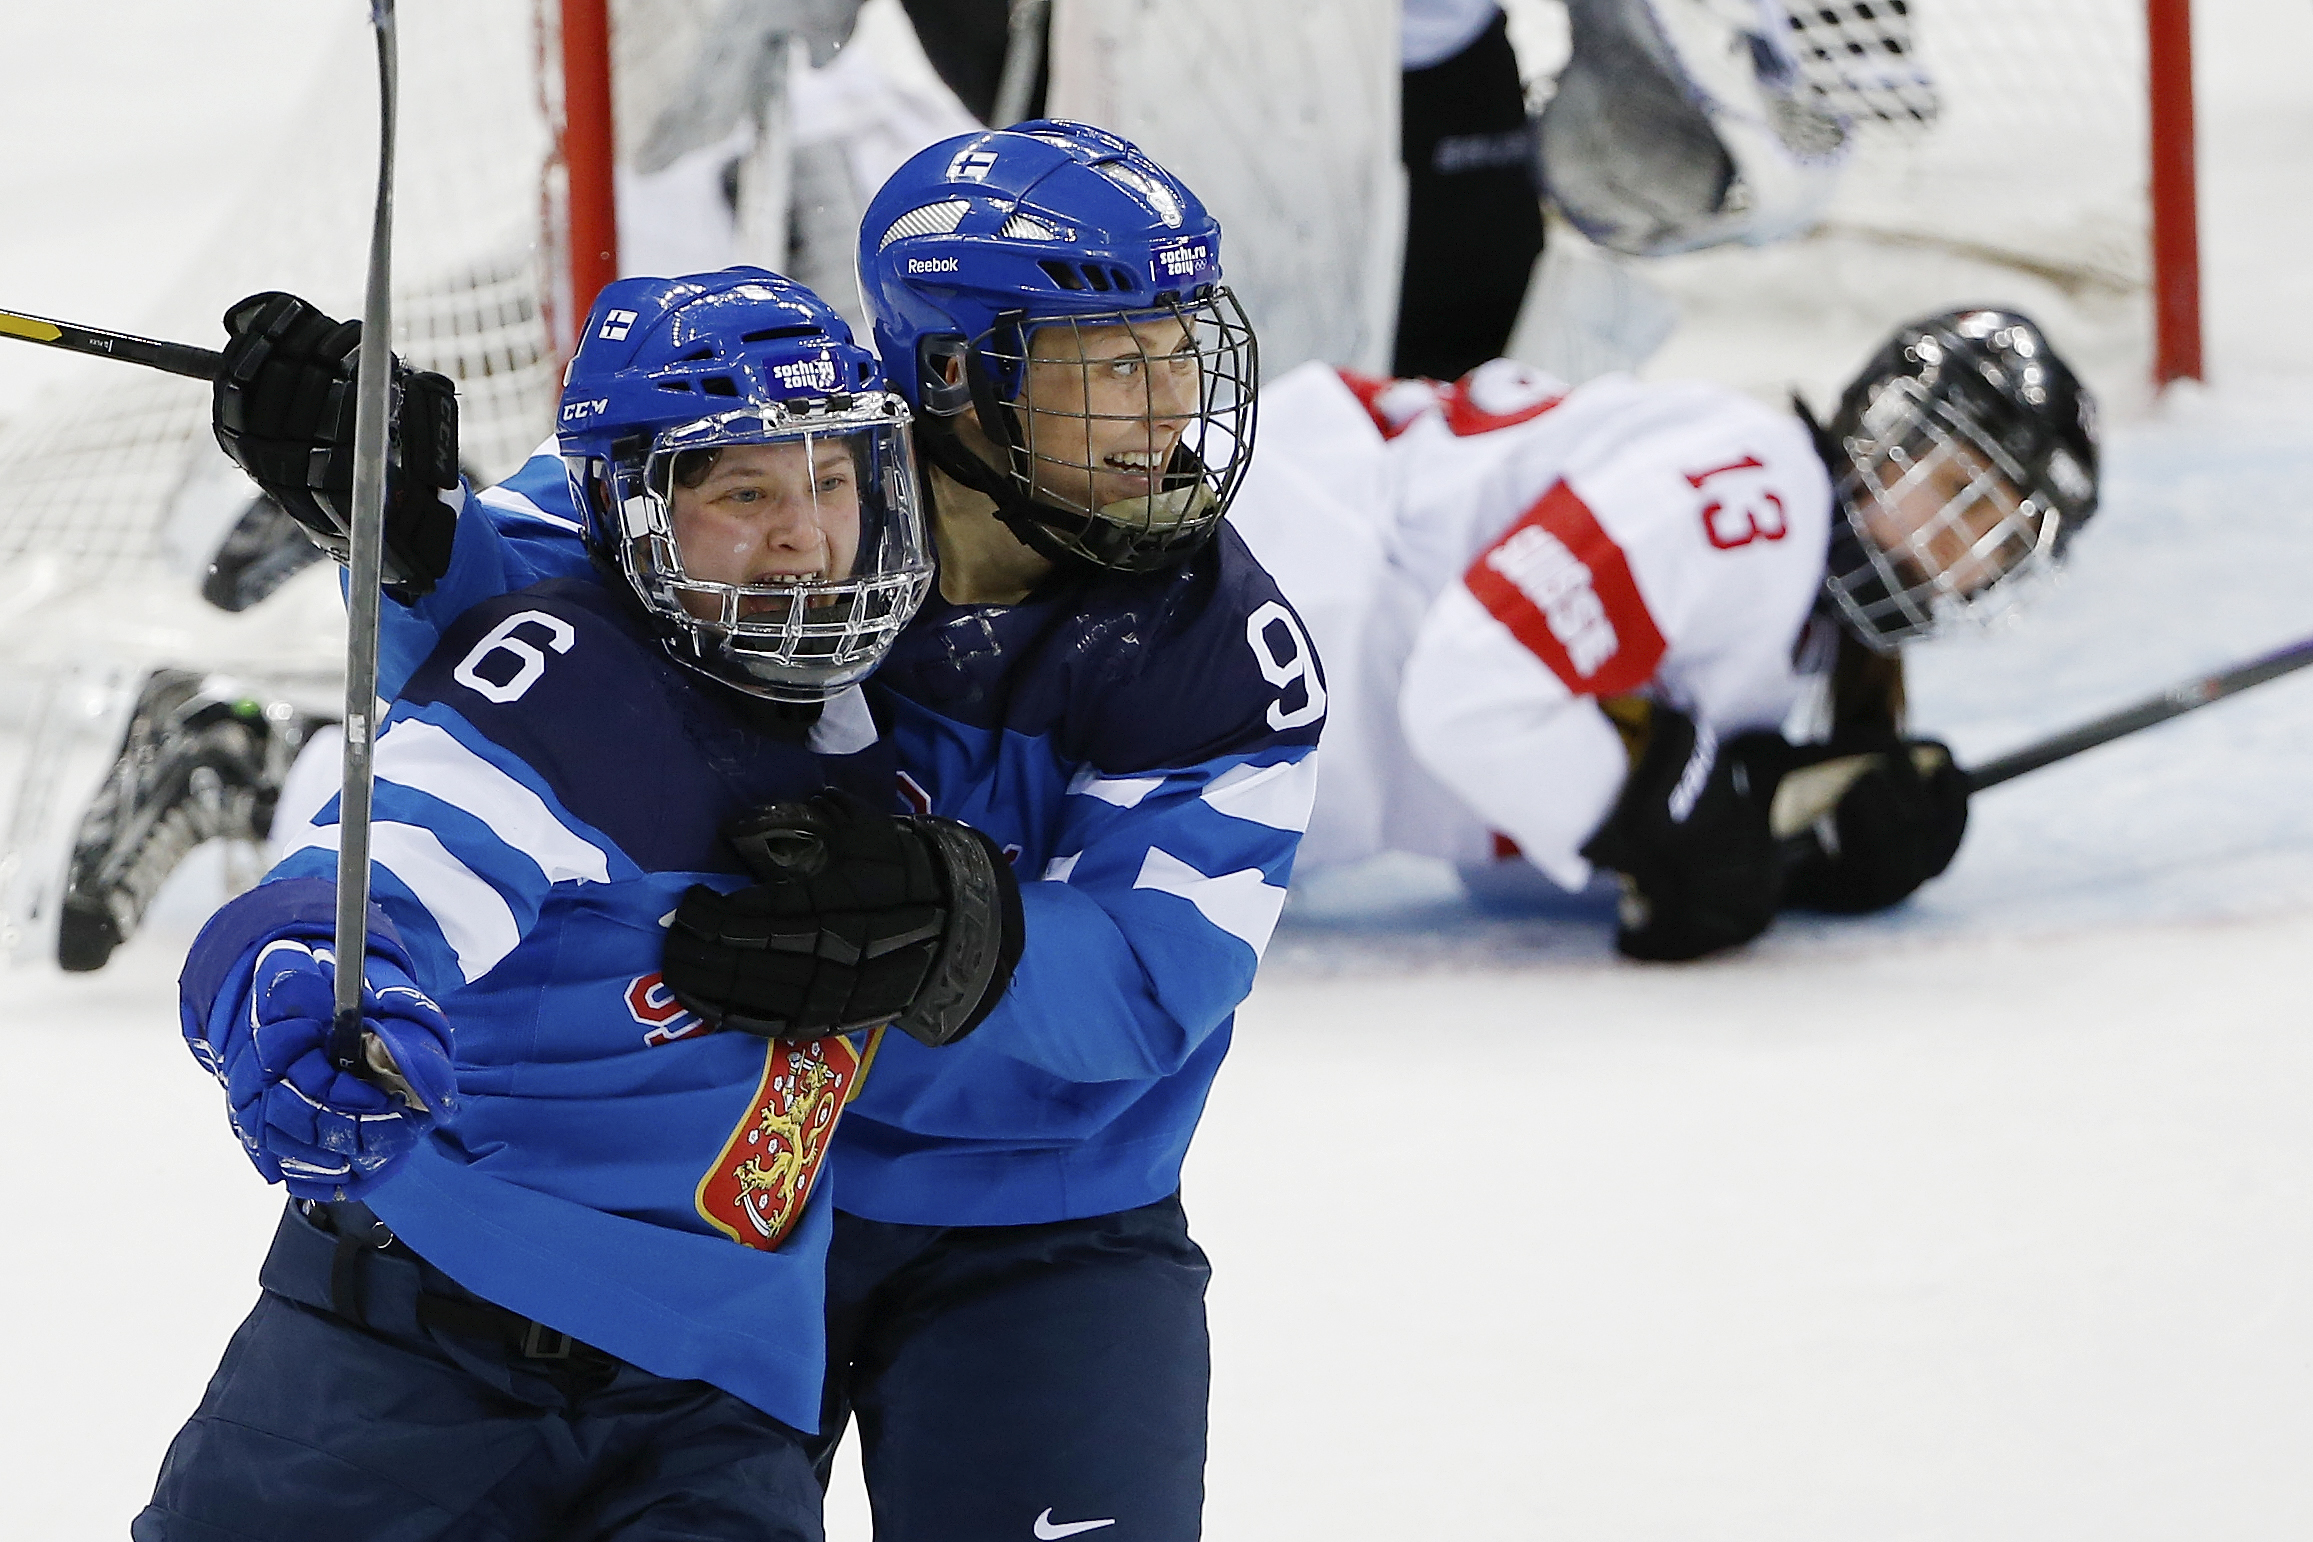 Jenni Hiirikoski of Finland, left, celebrates her game winning goal in overtime with teammate Venla Hovi, right, as Sara Benz of Switzerland looks on in the background during the 2014 Winter Olympics women's ice hockey game at Shayba Arena, Wednesday, Feb. 12, 2014, in Sochi, Russia. Finland defeated Switzerland 4-3 in overtime. (AP Photo/Petr David Josek)